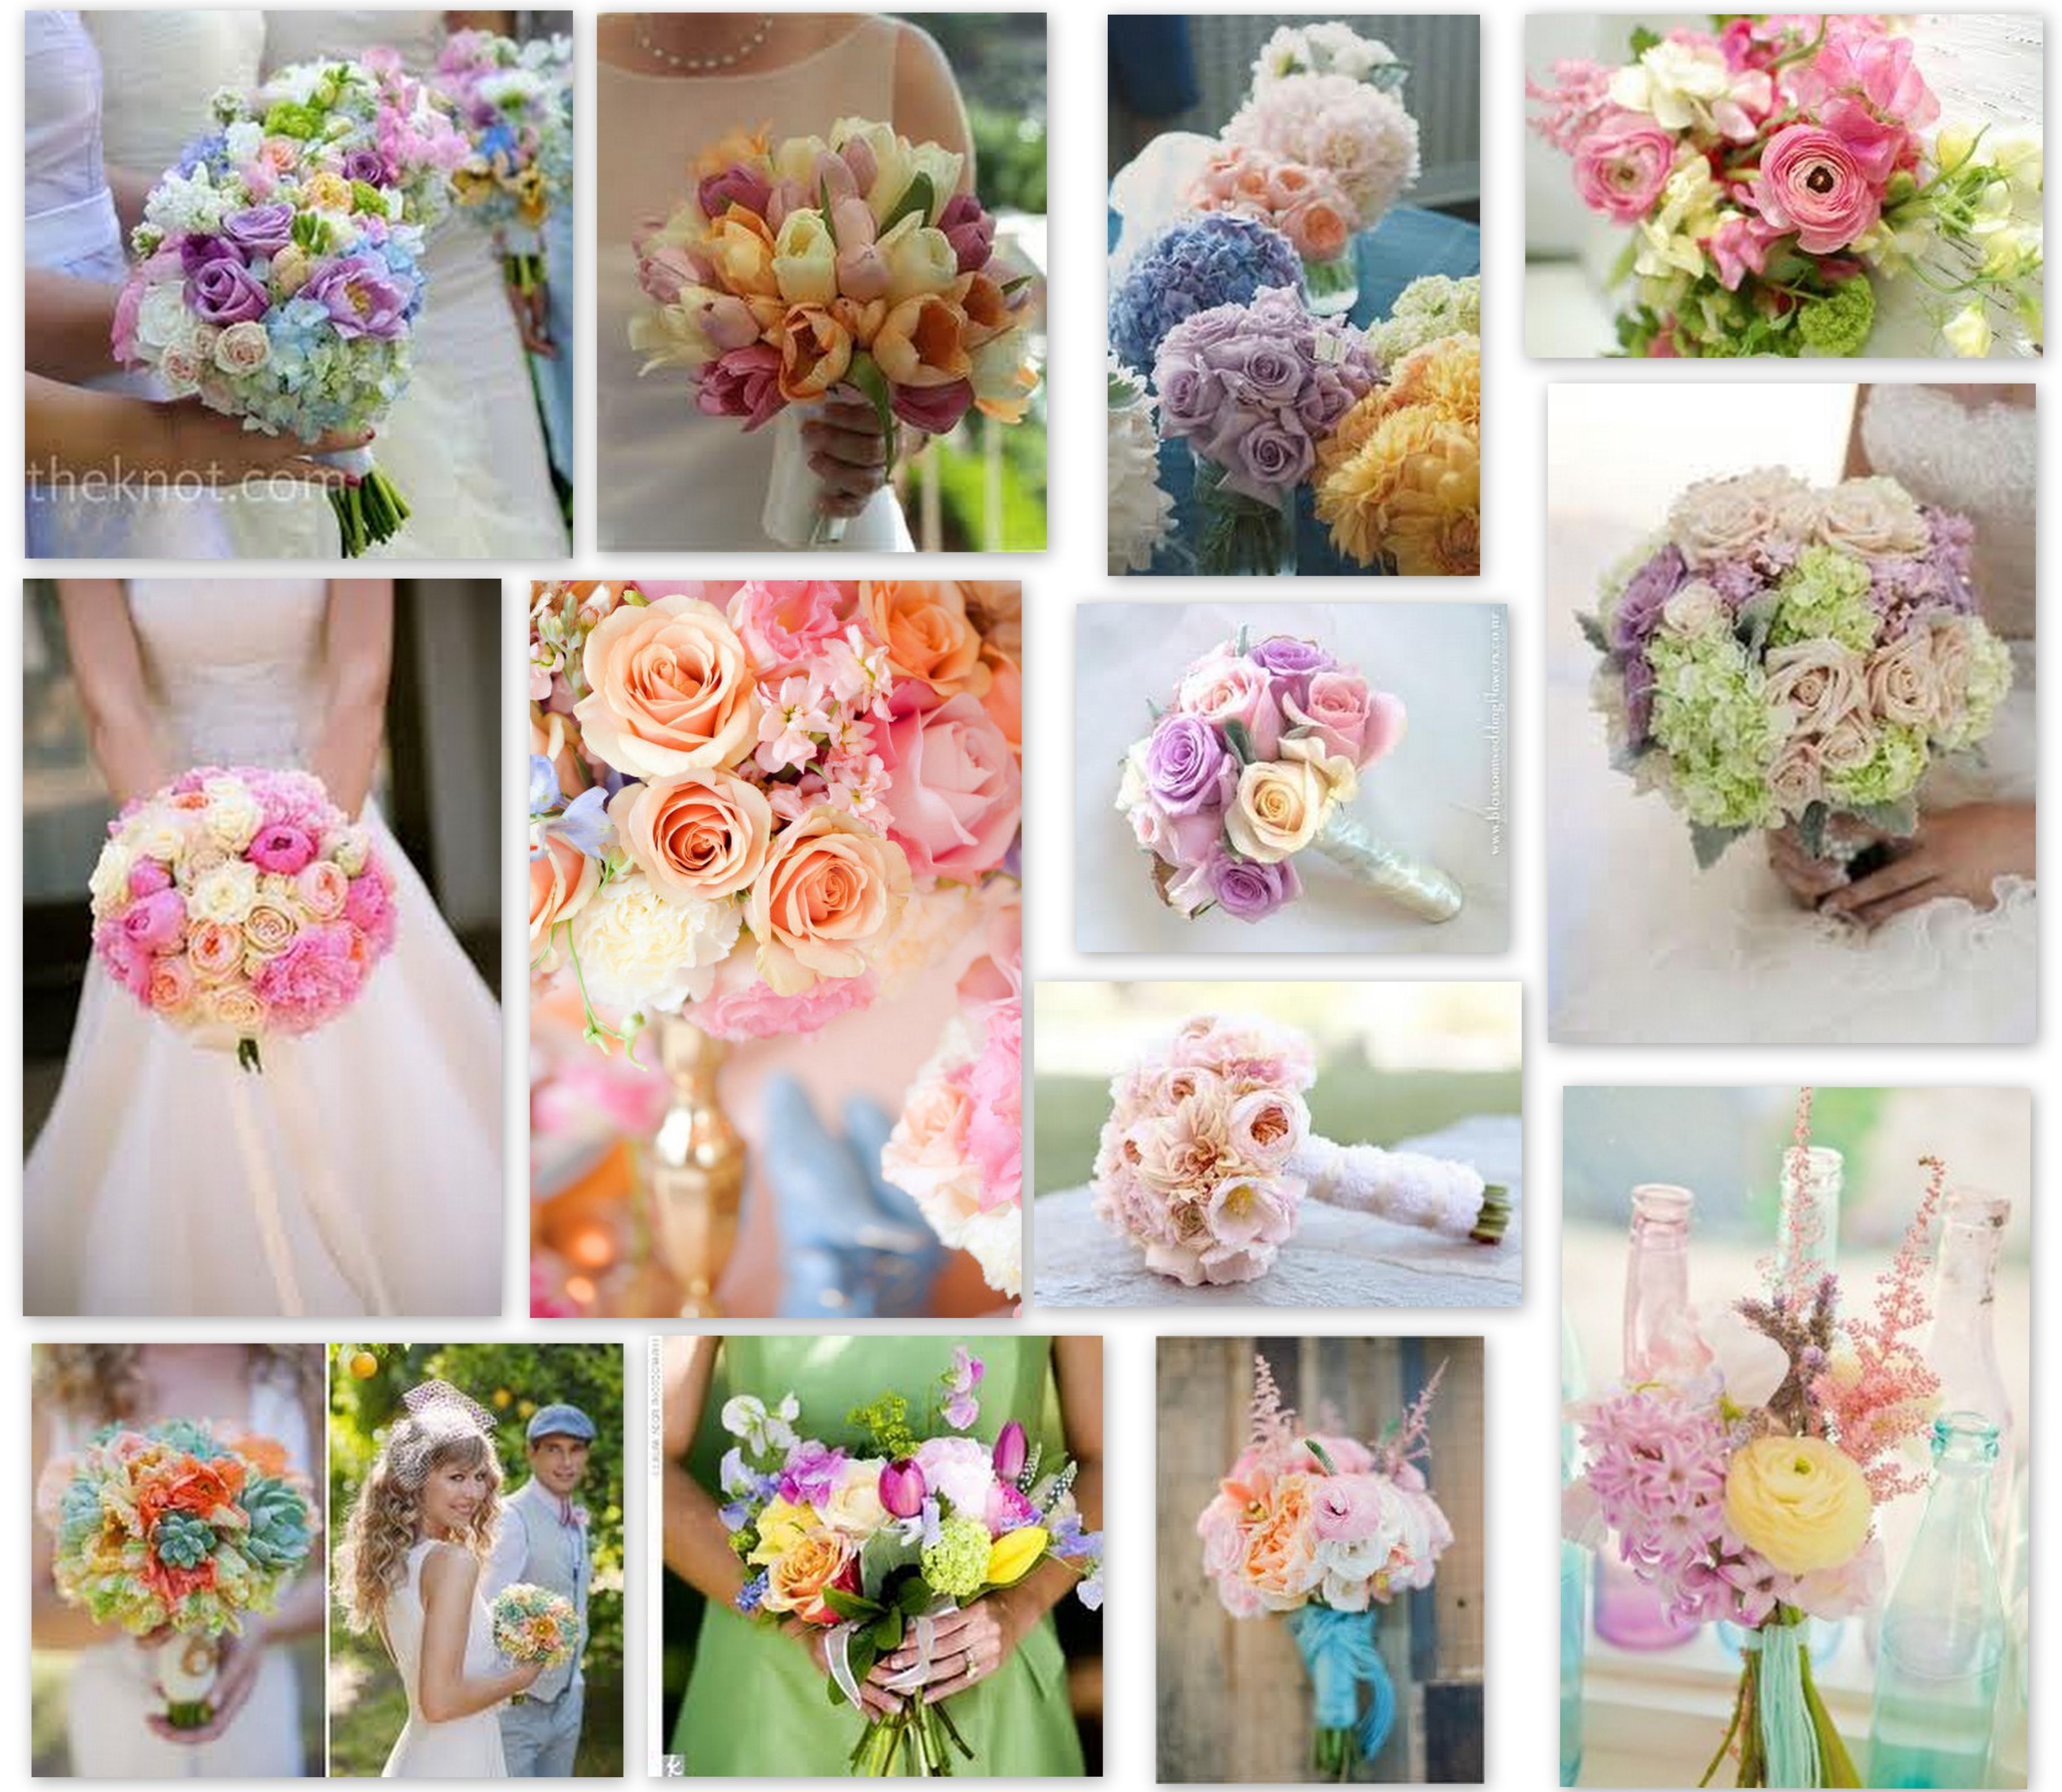 Pastel Flowers For Those Spring Weddings Or Parties